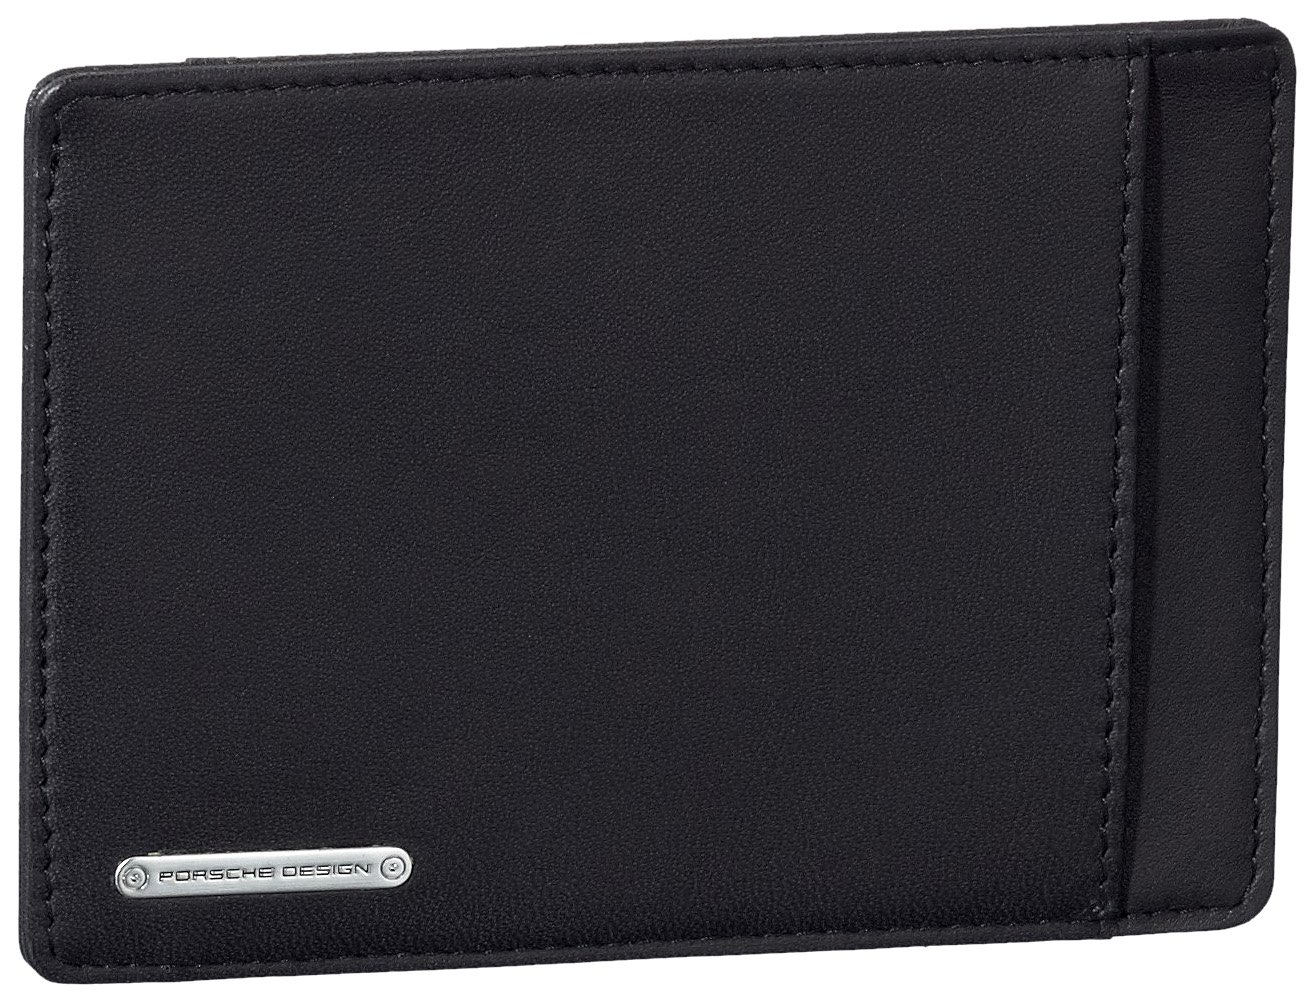 TALLA one size. Porsche Design 09/18/19172-01 - Monedero de Cuero Unisex, Color Negro, Talla One Size